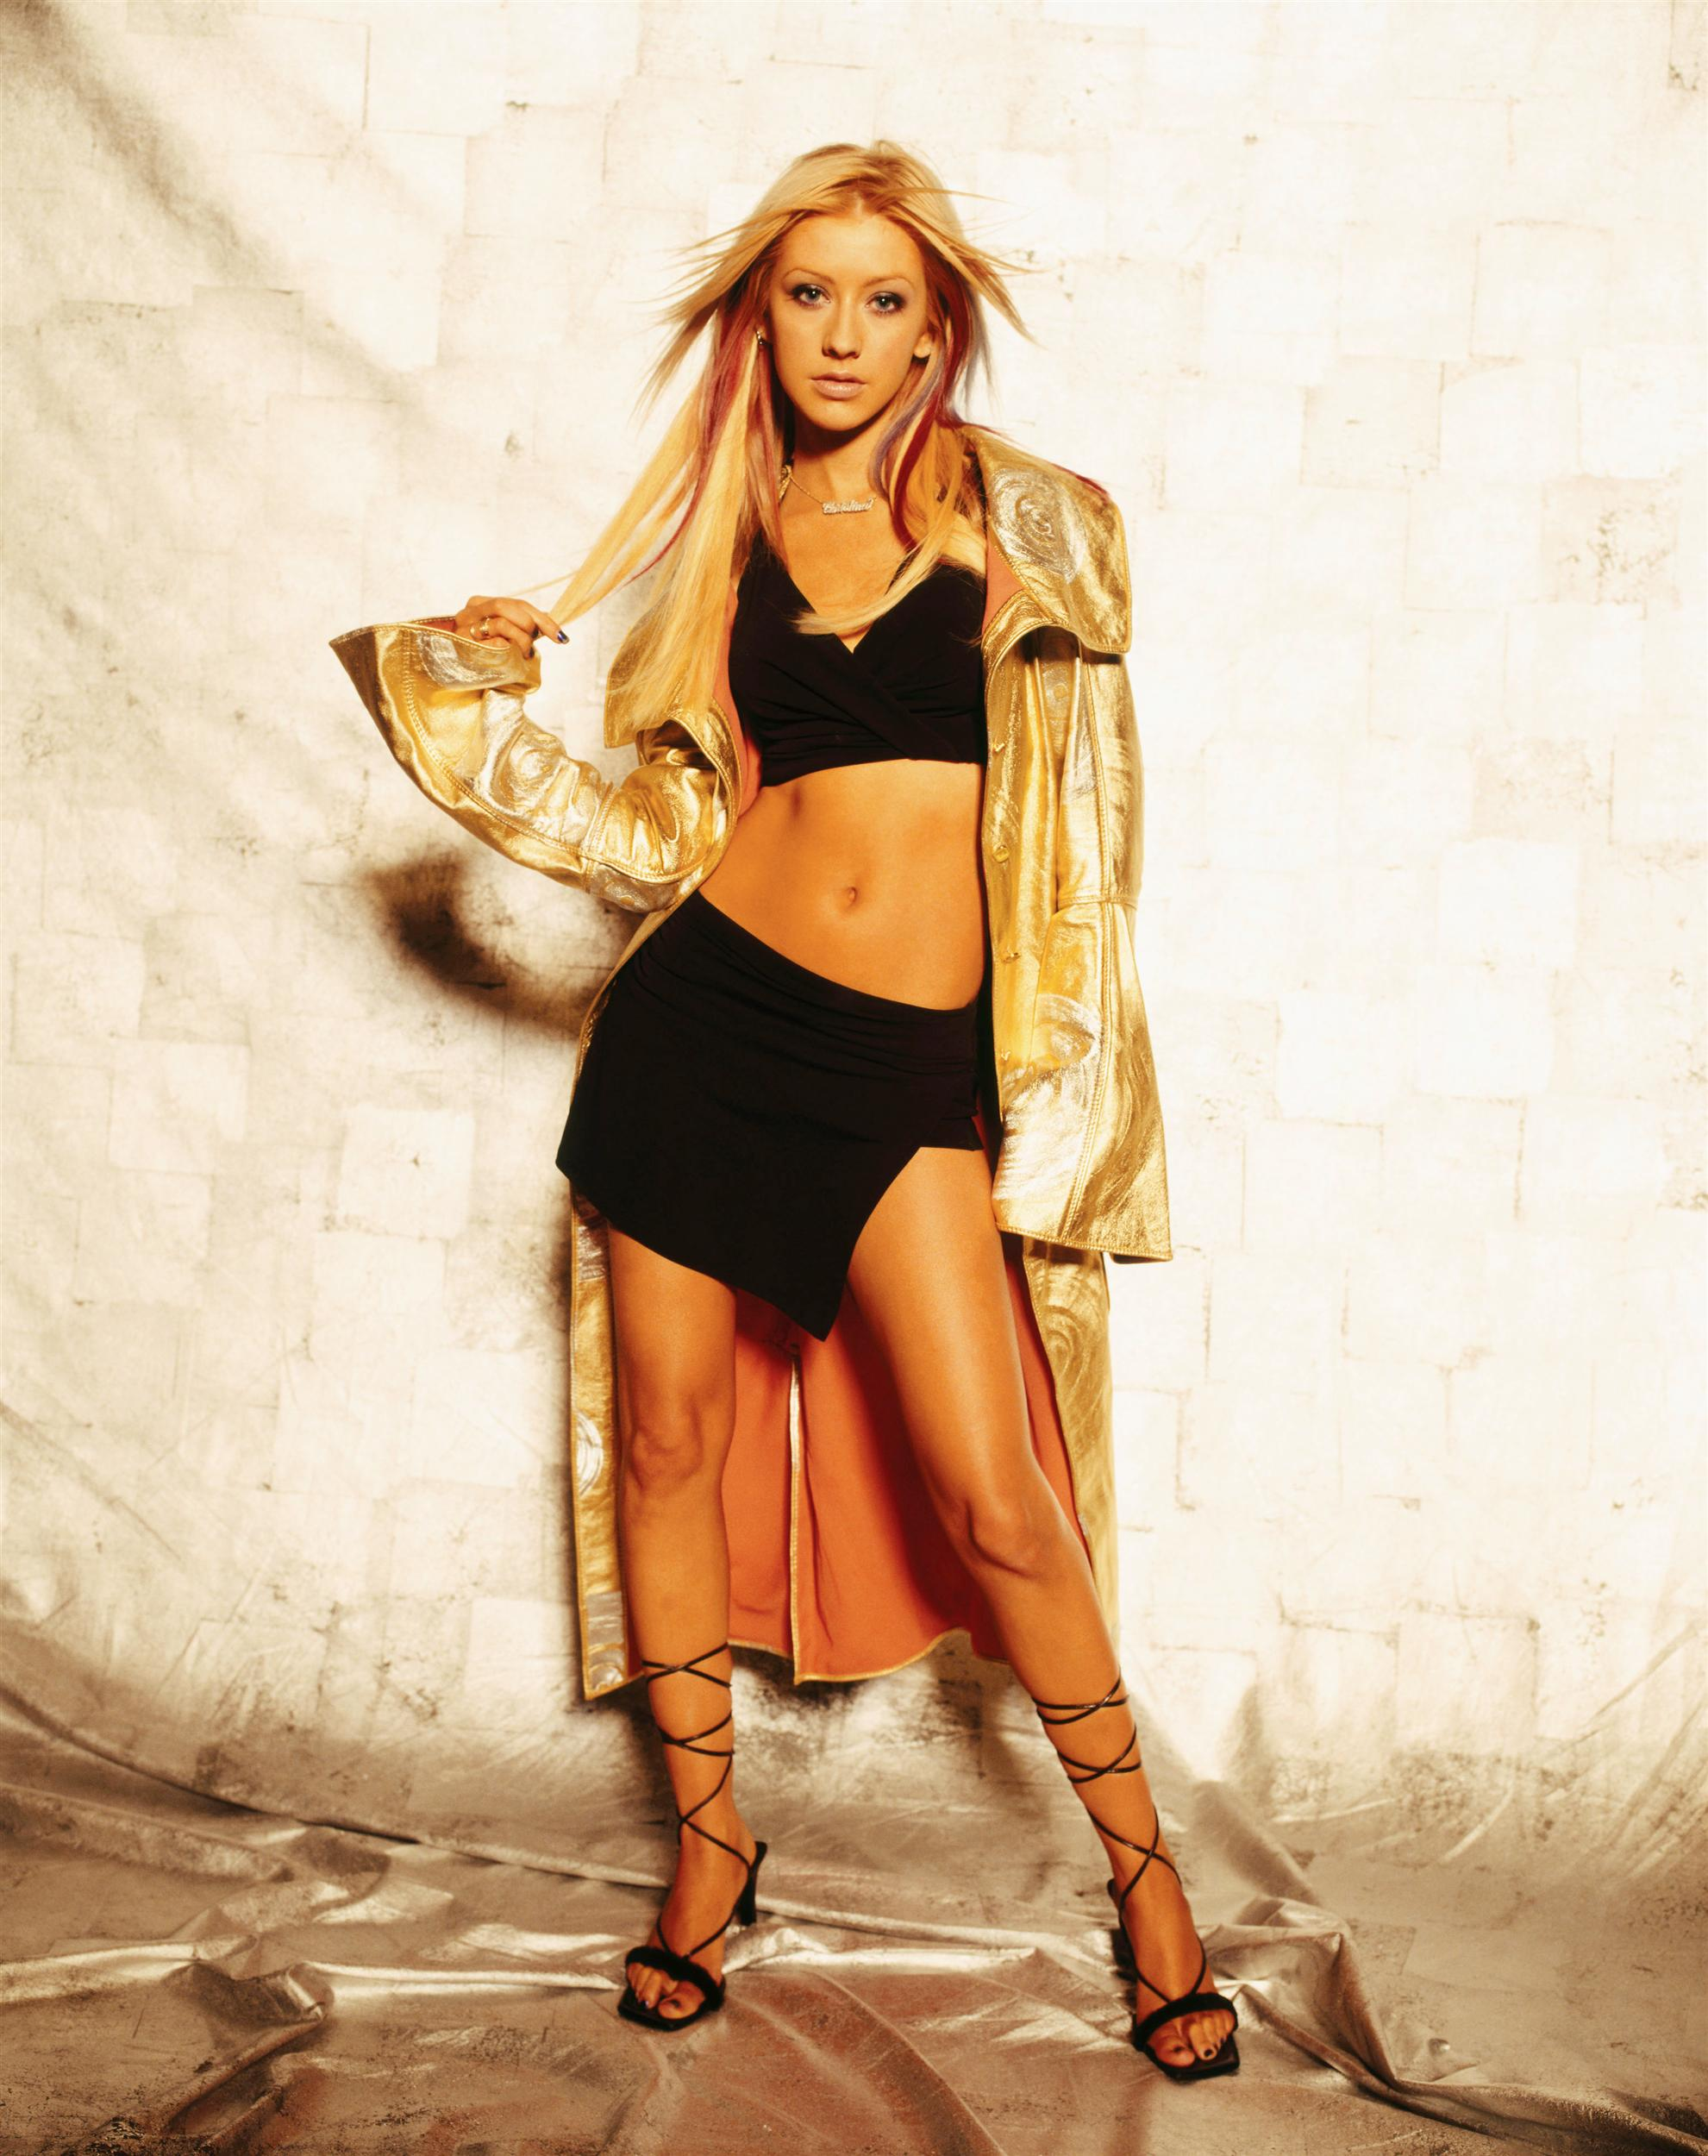 55806_Christina_Aguilera-014183_Len_Irish_Photoshoot_122_1117lo.jpg